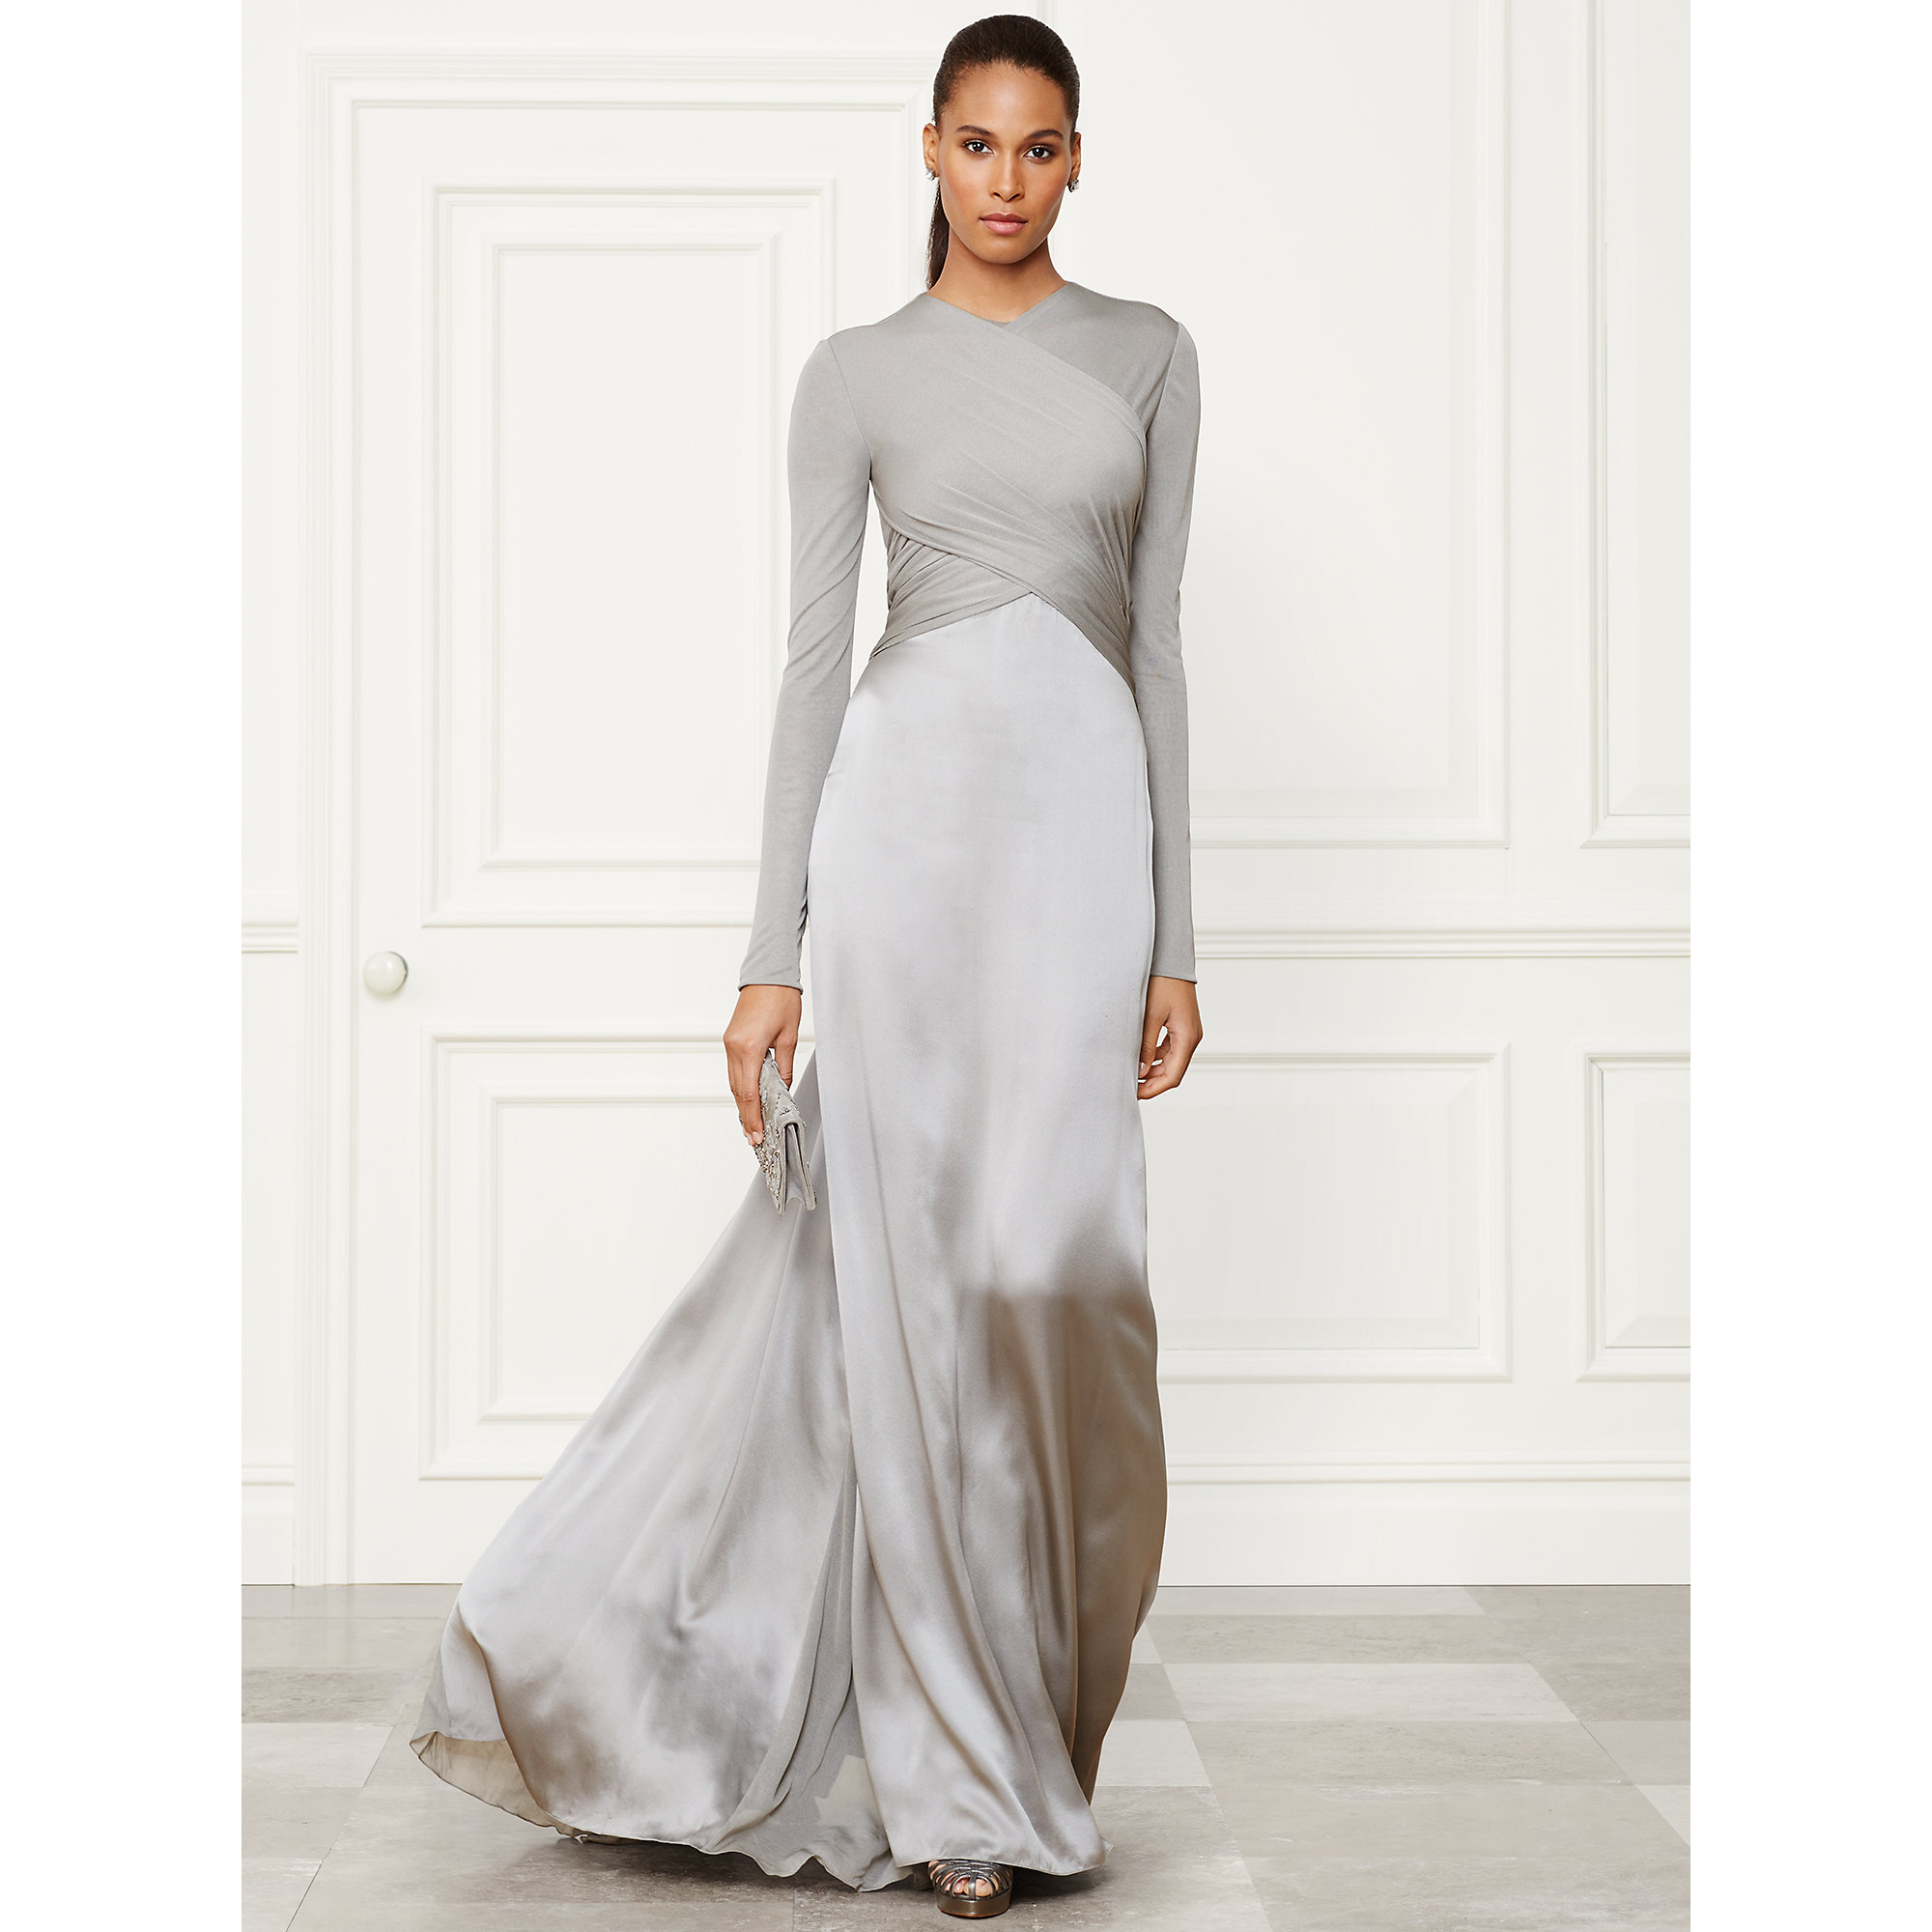 Lyst - Ralph Lauren Collection Fiona Evening Gown in Gray